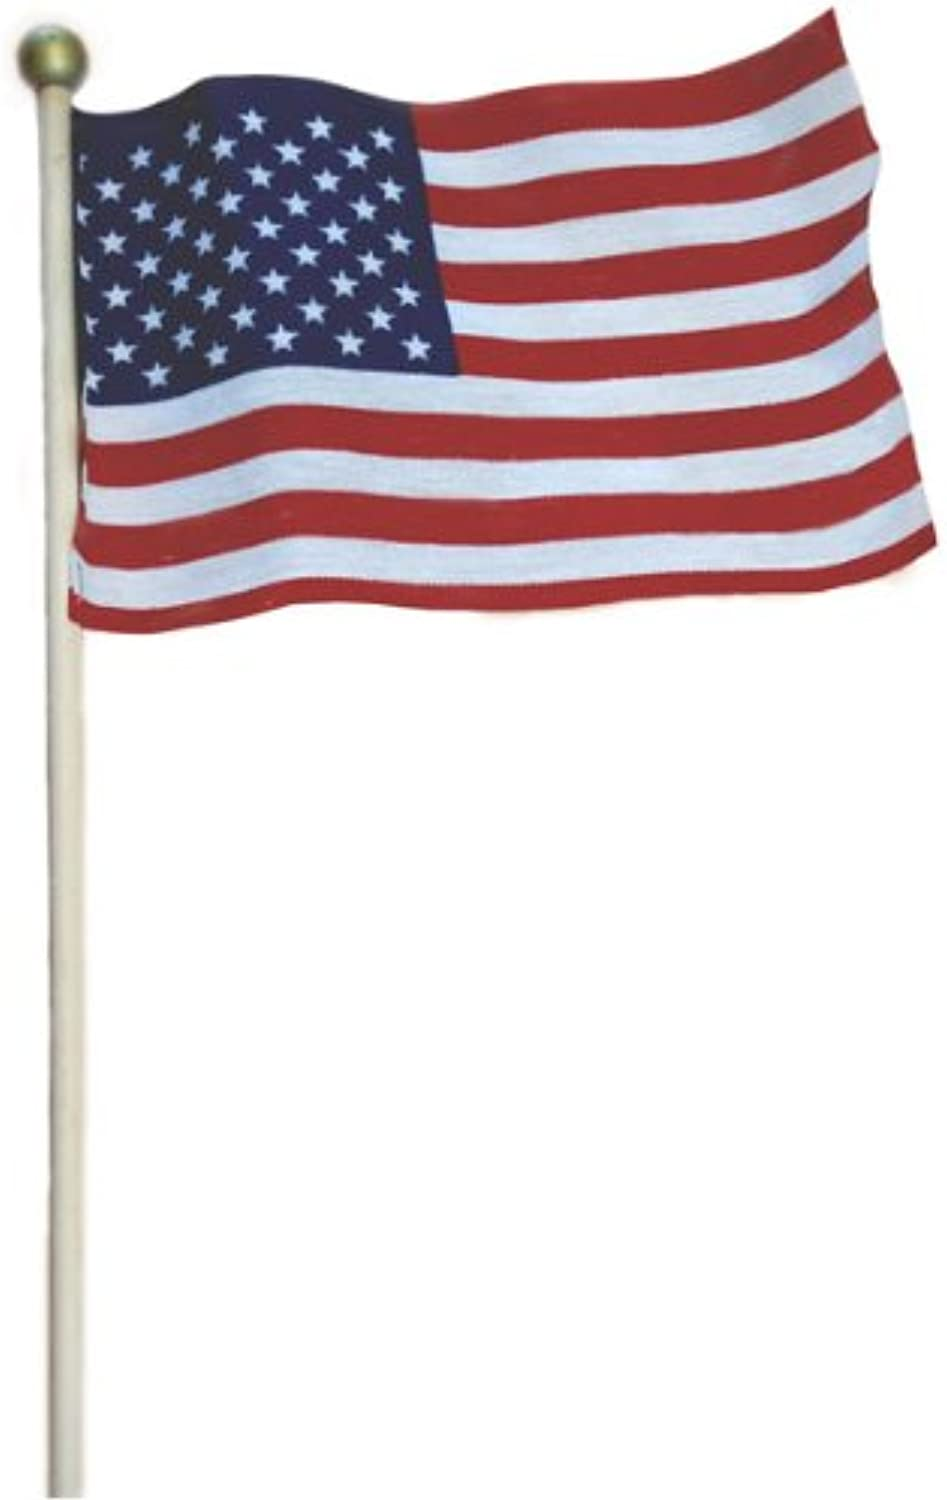 Valley Forge USE4B 12 Pack of 4x6 Inch American Made US Stick Flags